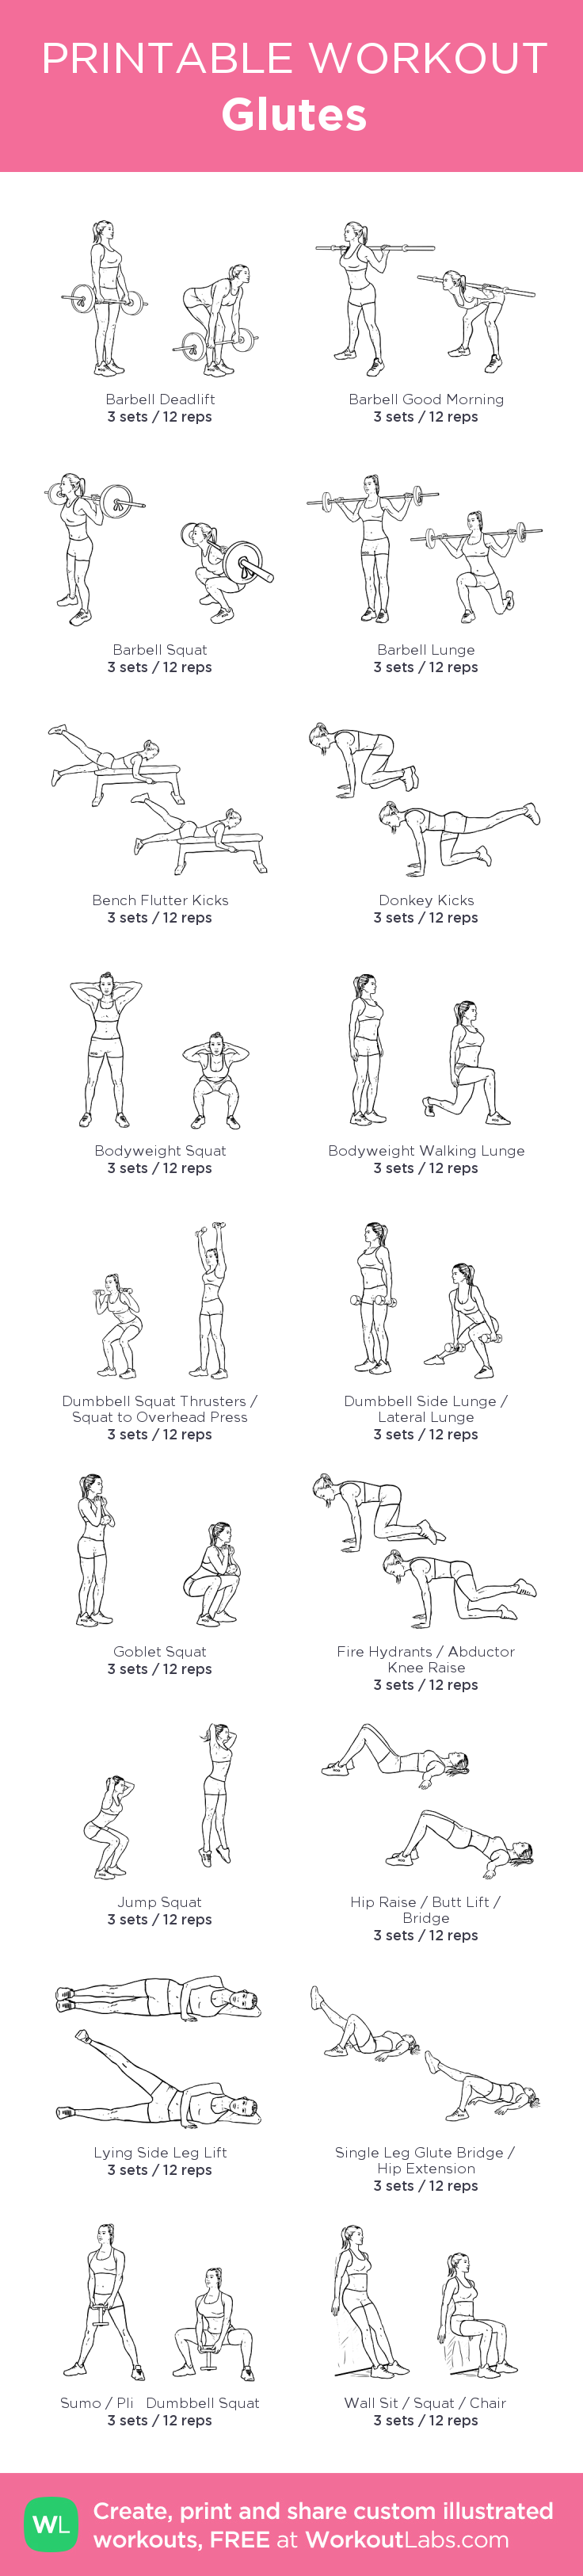 Glutes : my visual workout created at WorkoutLabs.com • Click through to customize and download as a FREE PDF! #customworkout